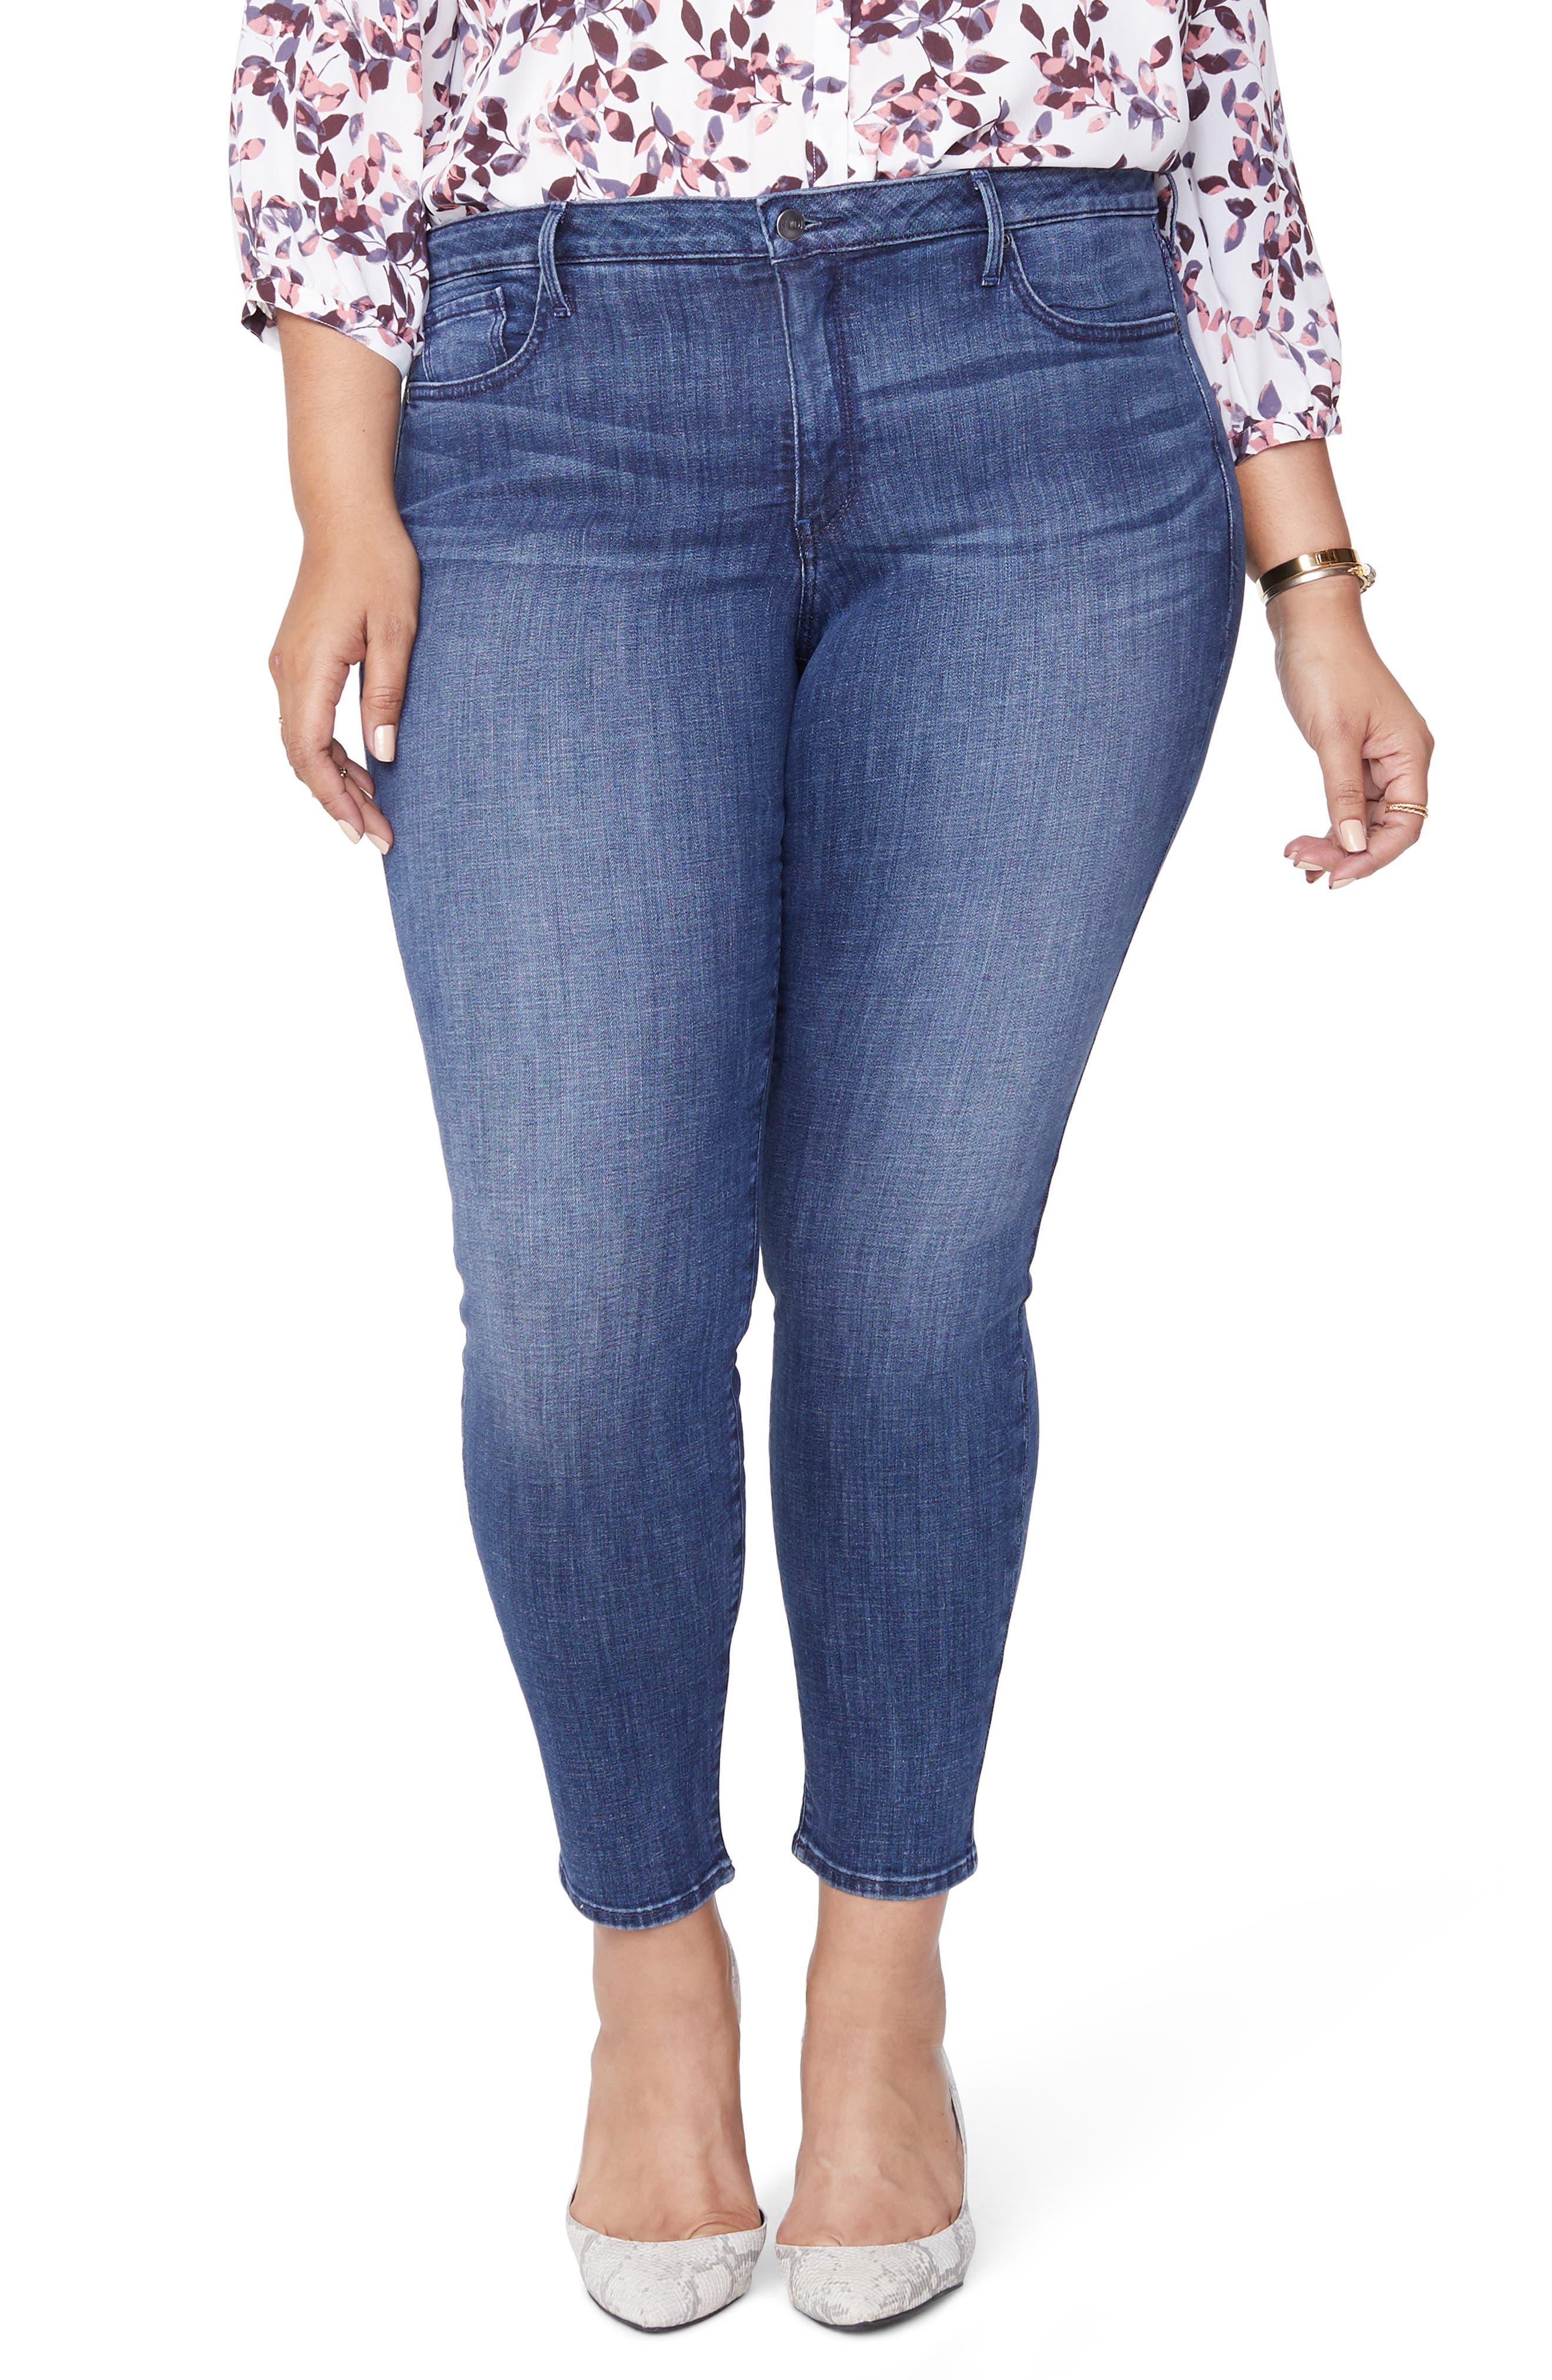 Ami Skinny Jeans,                             Main thumbnail 1, color,                             LUPINE